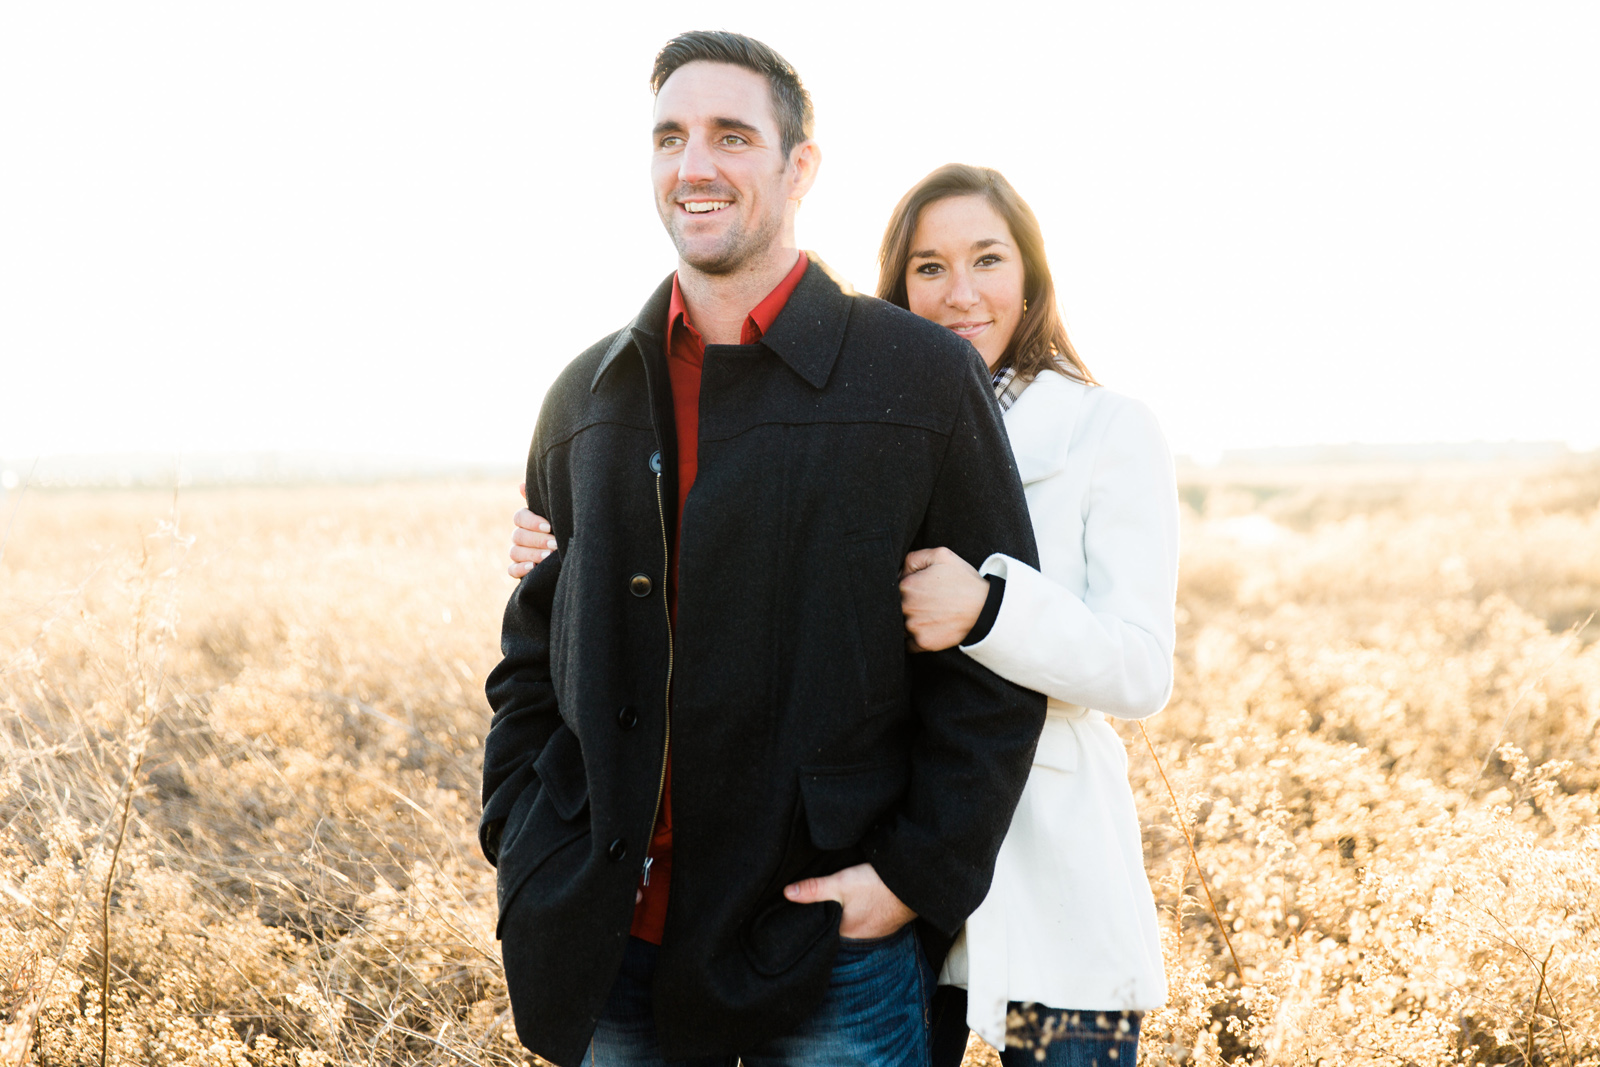 Oldani Photography-St Charles-Family Session-engagement-New Town_20141228_17064800.jpg